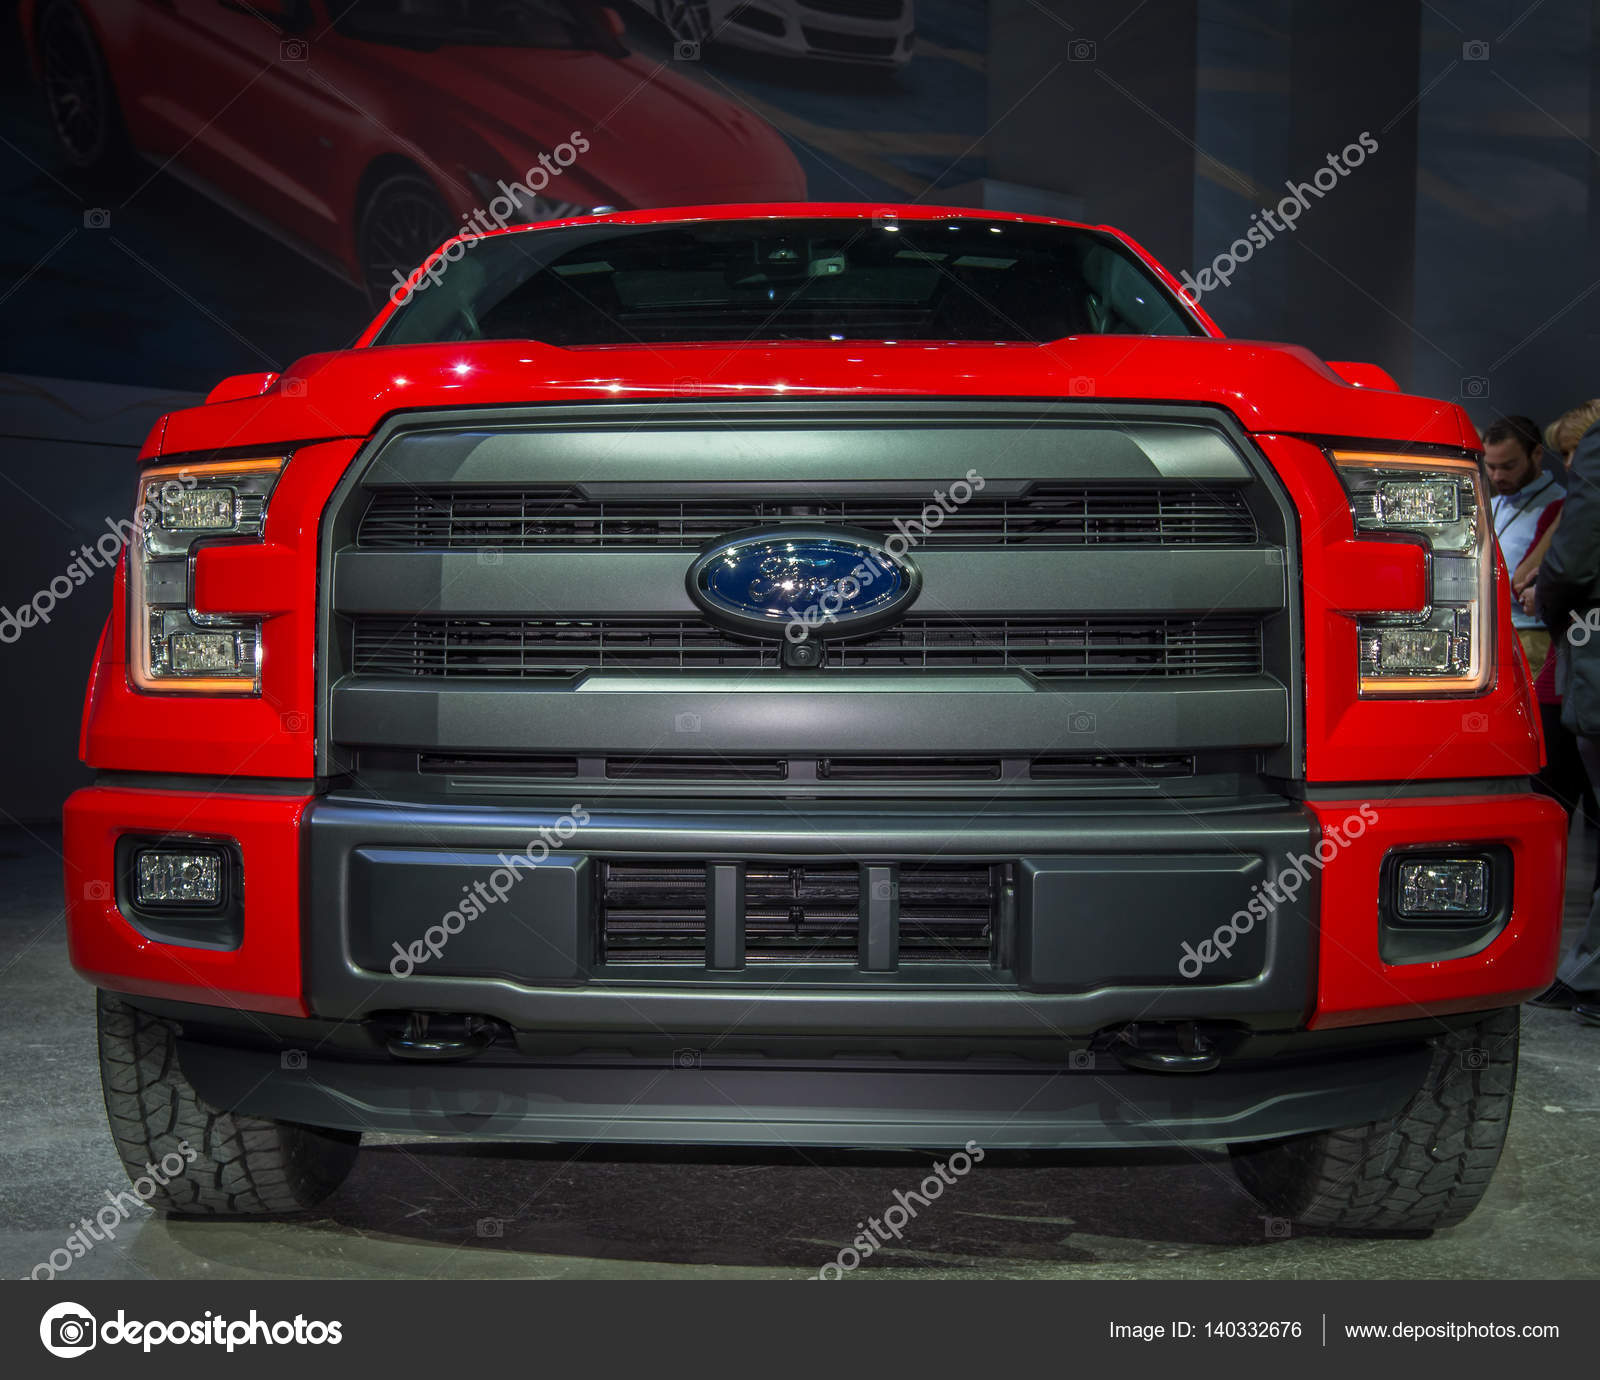 r f flareside comments ford trucks to xnupfod me new